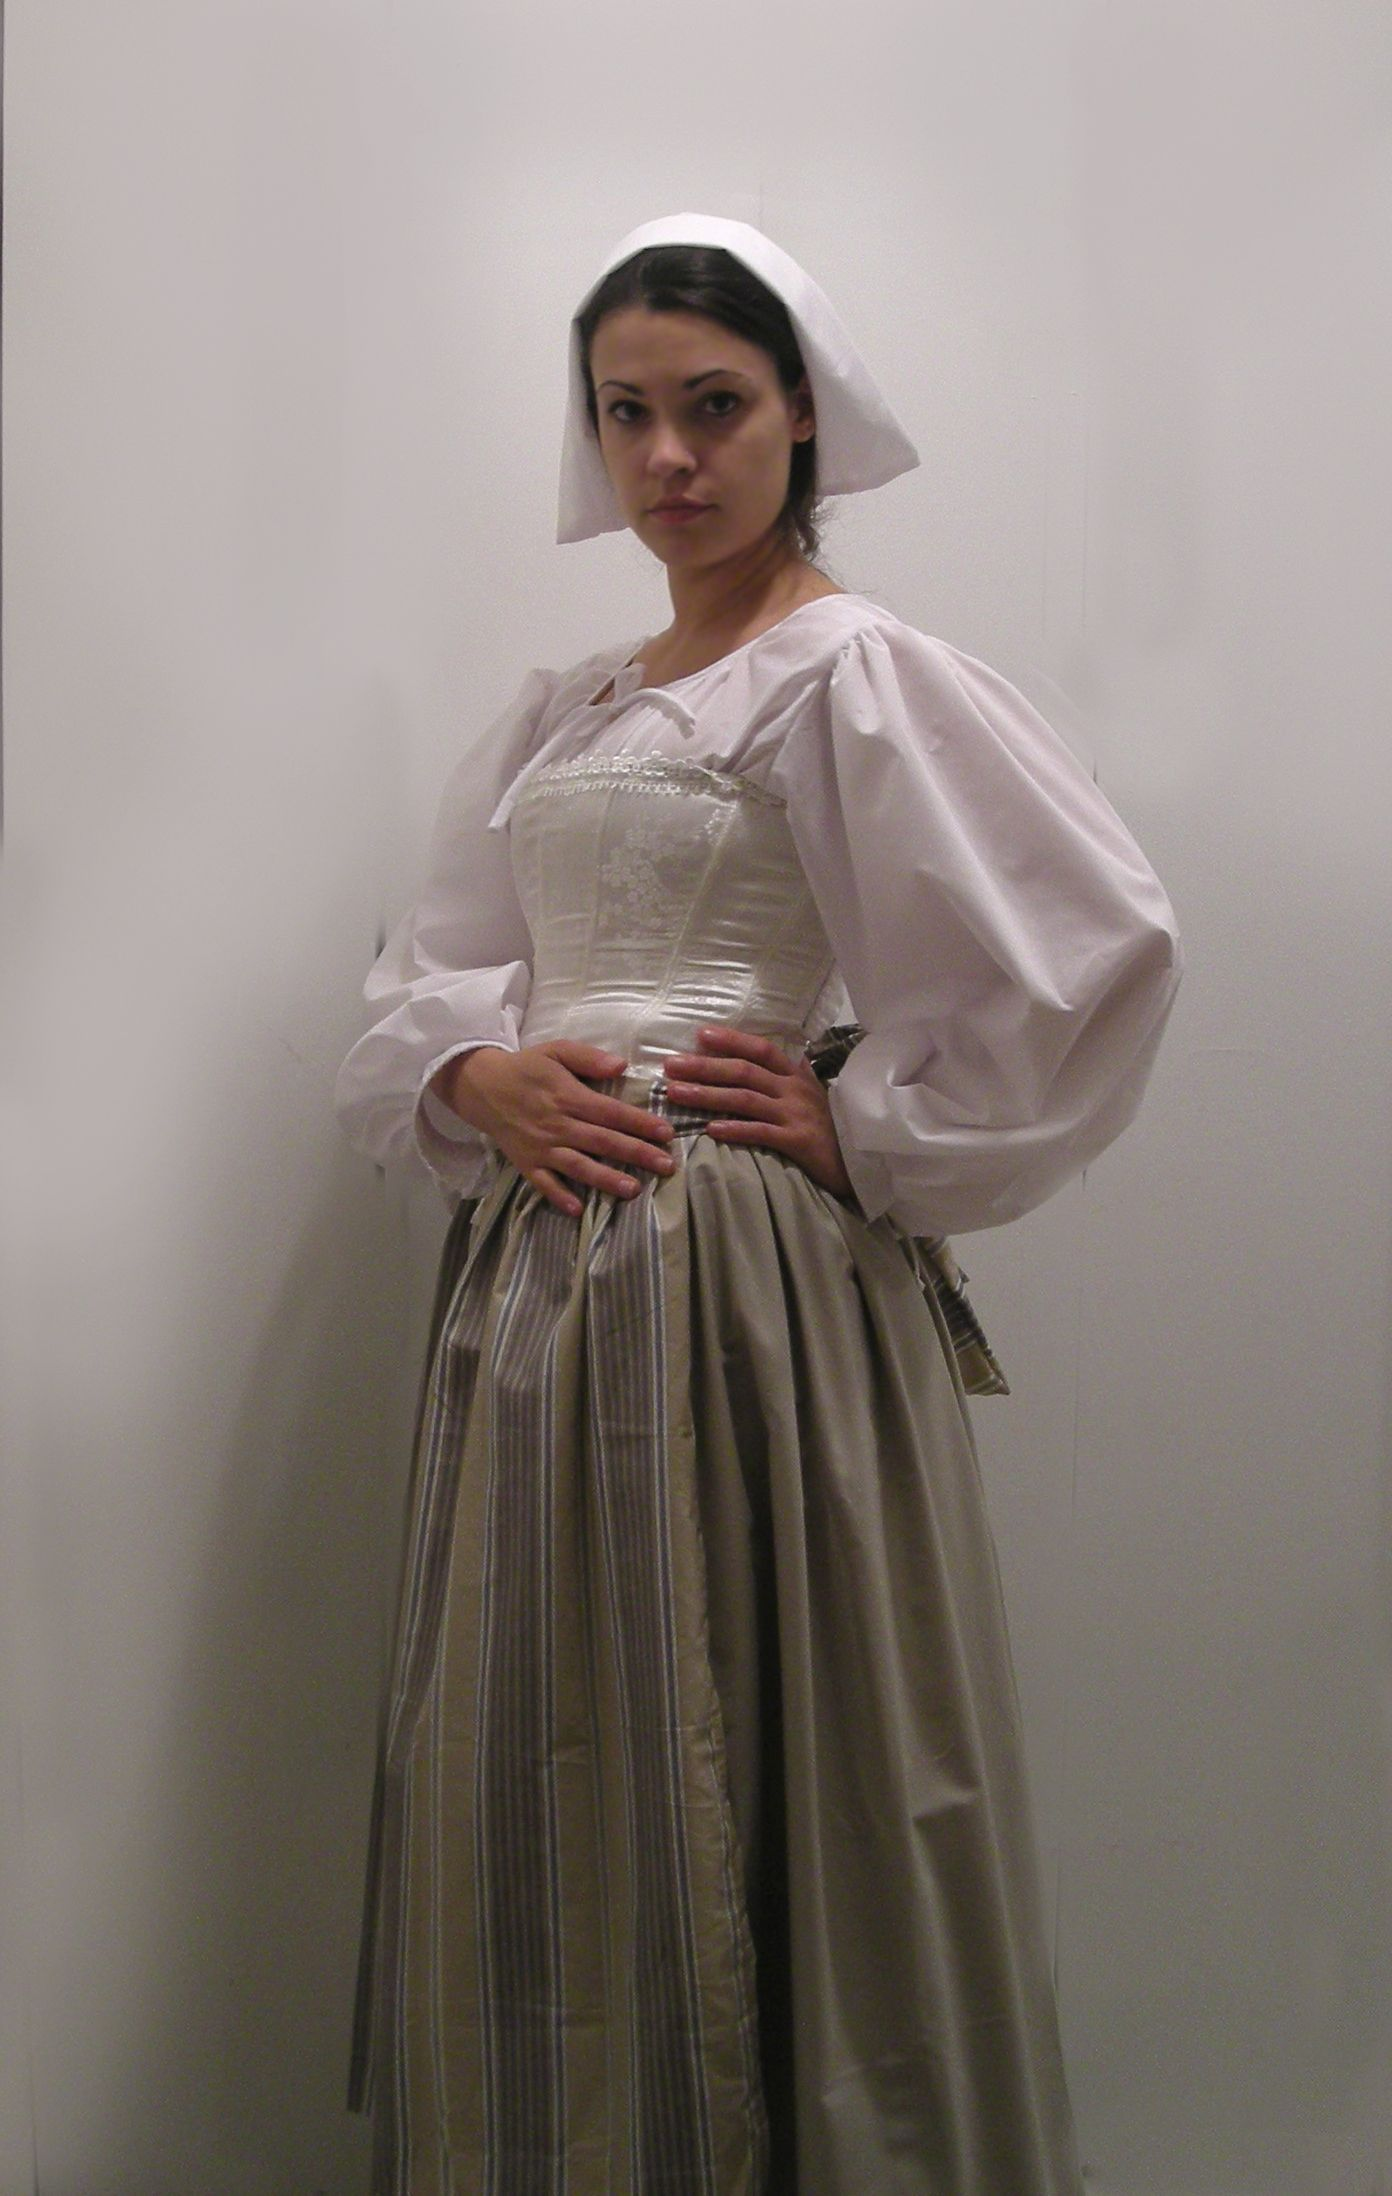 bd5bd815e peasant costume   French Revolution in 2019   Peasant clothing, 18th ...